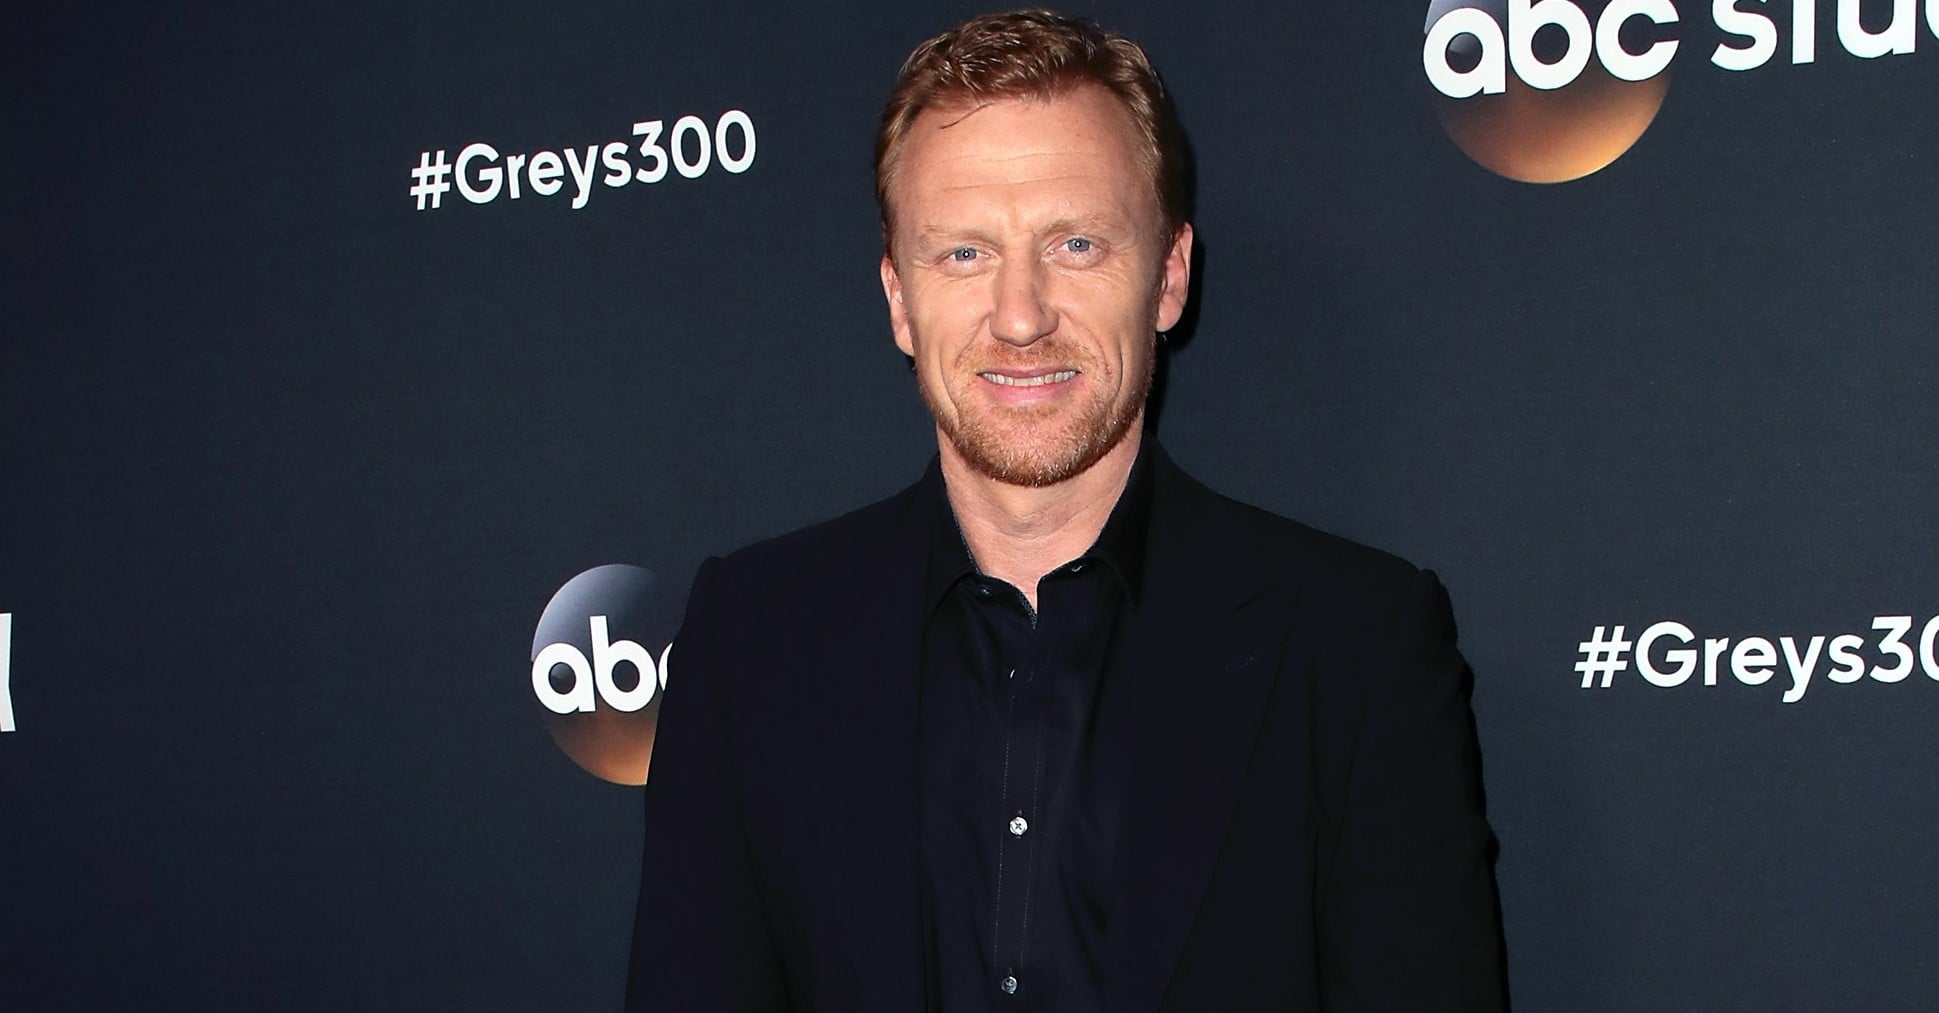 'Grey's Anatomy' Star Kevin McKidd Ties the Knot, Expecting Baby